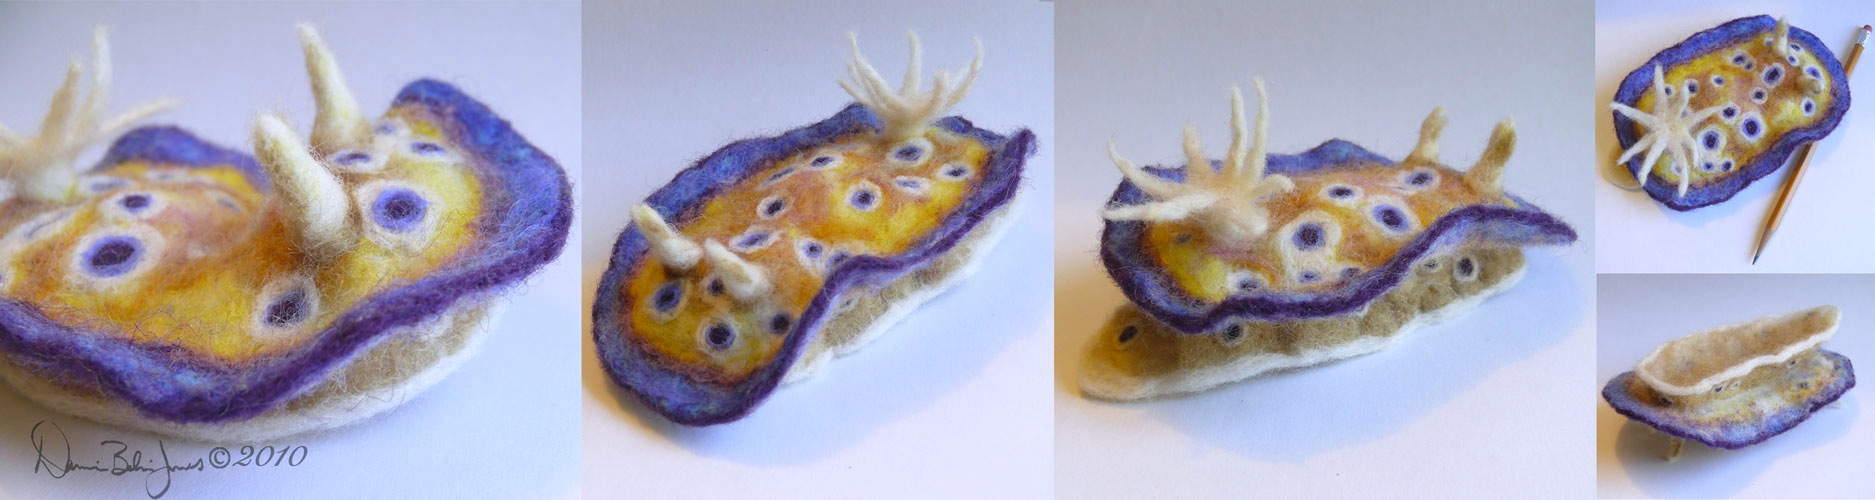 Sea Slug Kuniei by FamiliarOddlings